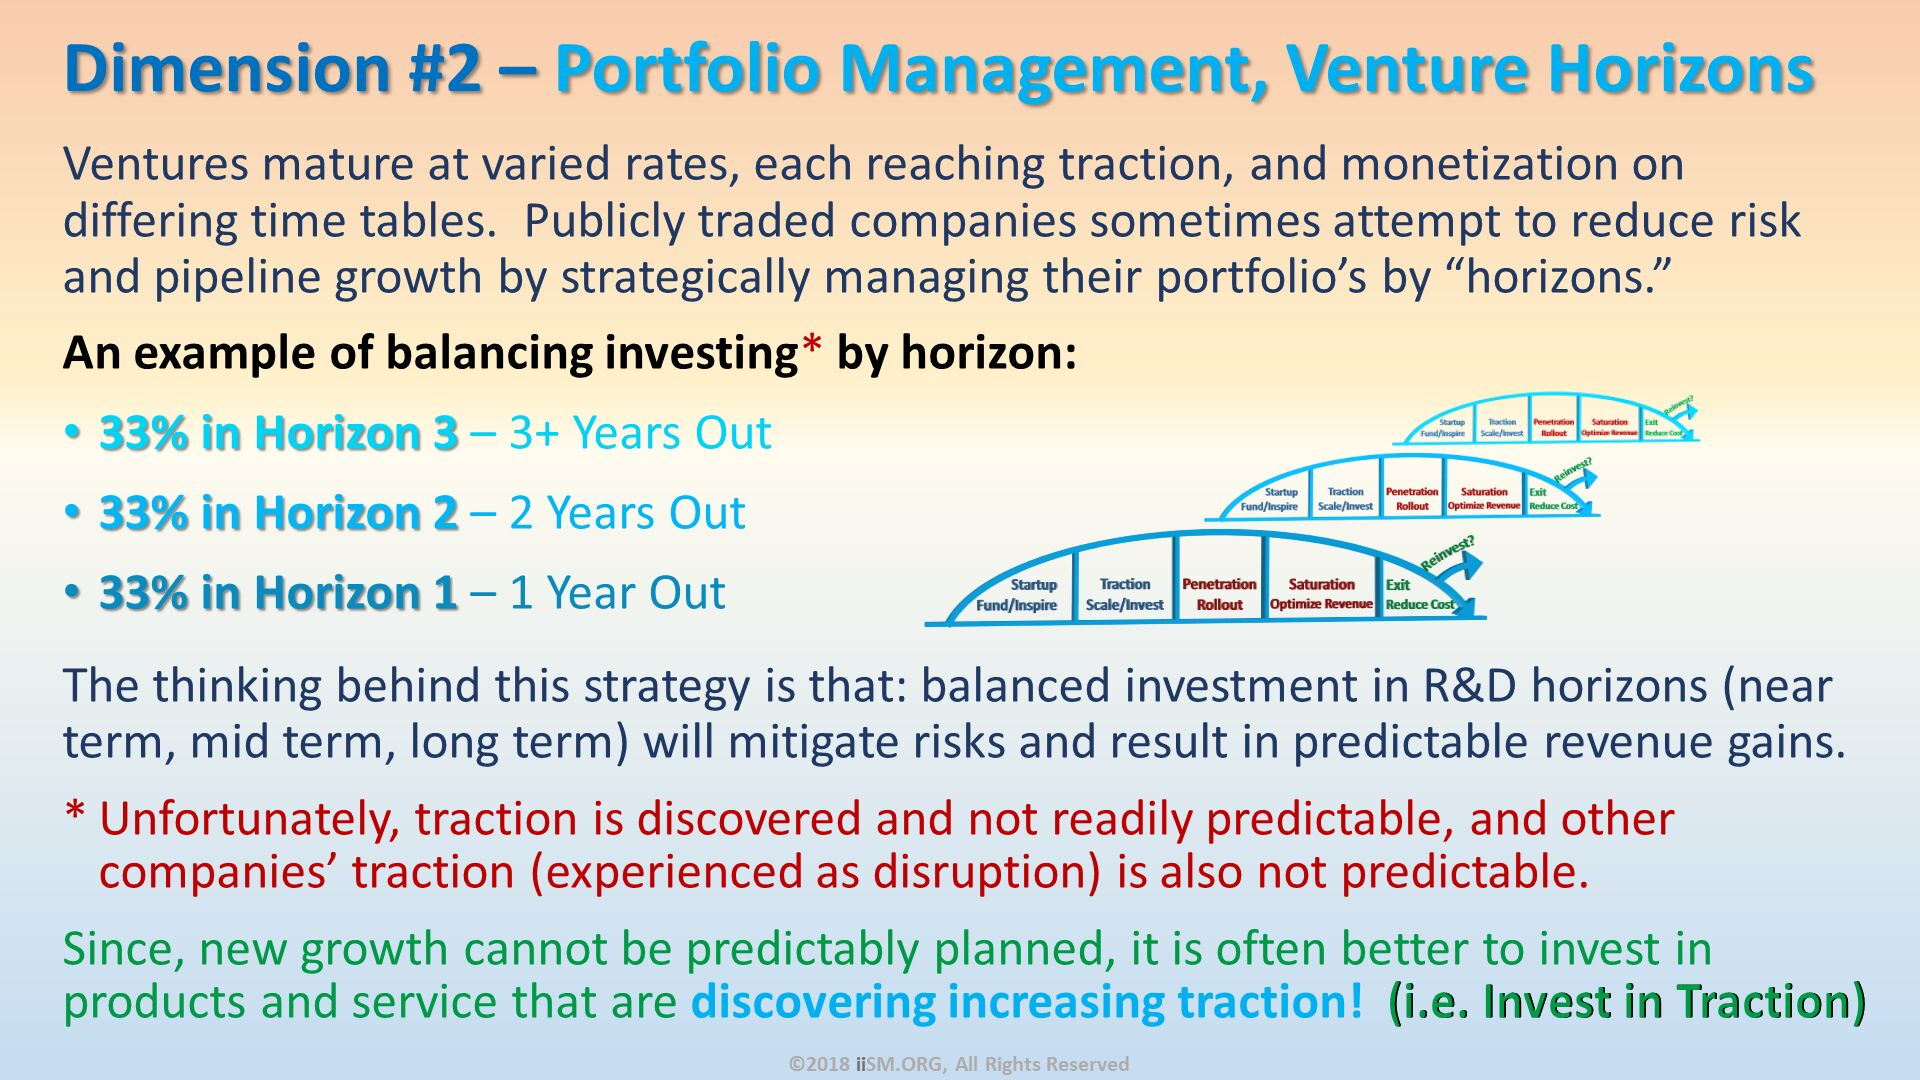 "Ventures mature at varied rates, each reaching traction, and monetization on differing time tables.  Publicly traded companies sometimes attempt to reduce risk and pipeline growth by strategically managing their portfolio's by ""horizons.""  An example of balancing investing* by horizon: 33% in Horizon 3 – 3+ Years Out 33% in Horizon 2 – 2 Years Out  33% in Horizon 1 – 1 Year Out The thinking behind this strategy is that: balanced investment in R&D horizons (near term, mid term, long term) will mitigate risks and result in predictable revenue gains.   Unfortunately, traction is discovered and not readily predictable, and other companies' traction (experienced as disruption) is also not predictable.   Since, new growth cannot be predictably planned, it is often better to invest in products and service that are discovering increasing traction!  (i.e. Invest in Traction). Dimension #2 – Portfolio Management, Venture Horizons. ©2018 iiSM.ORG, All Rights Reserved."